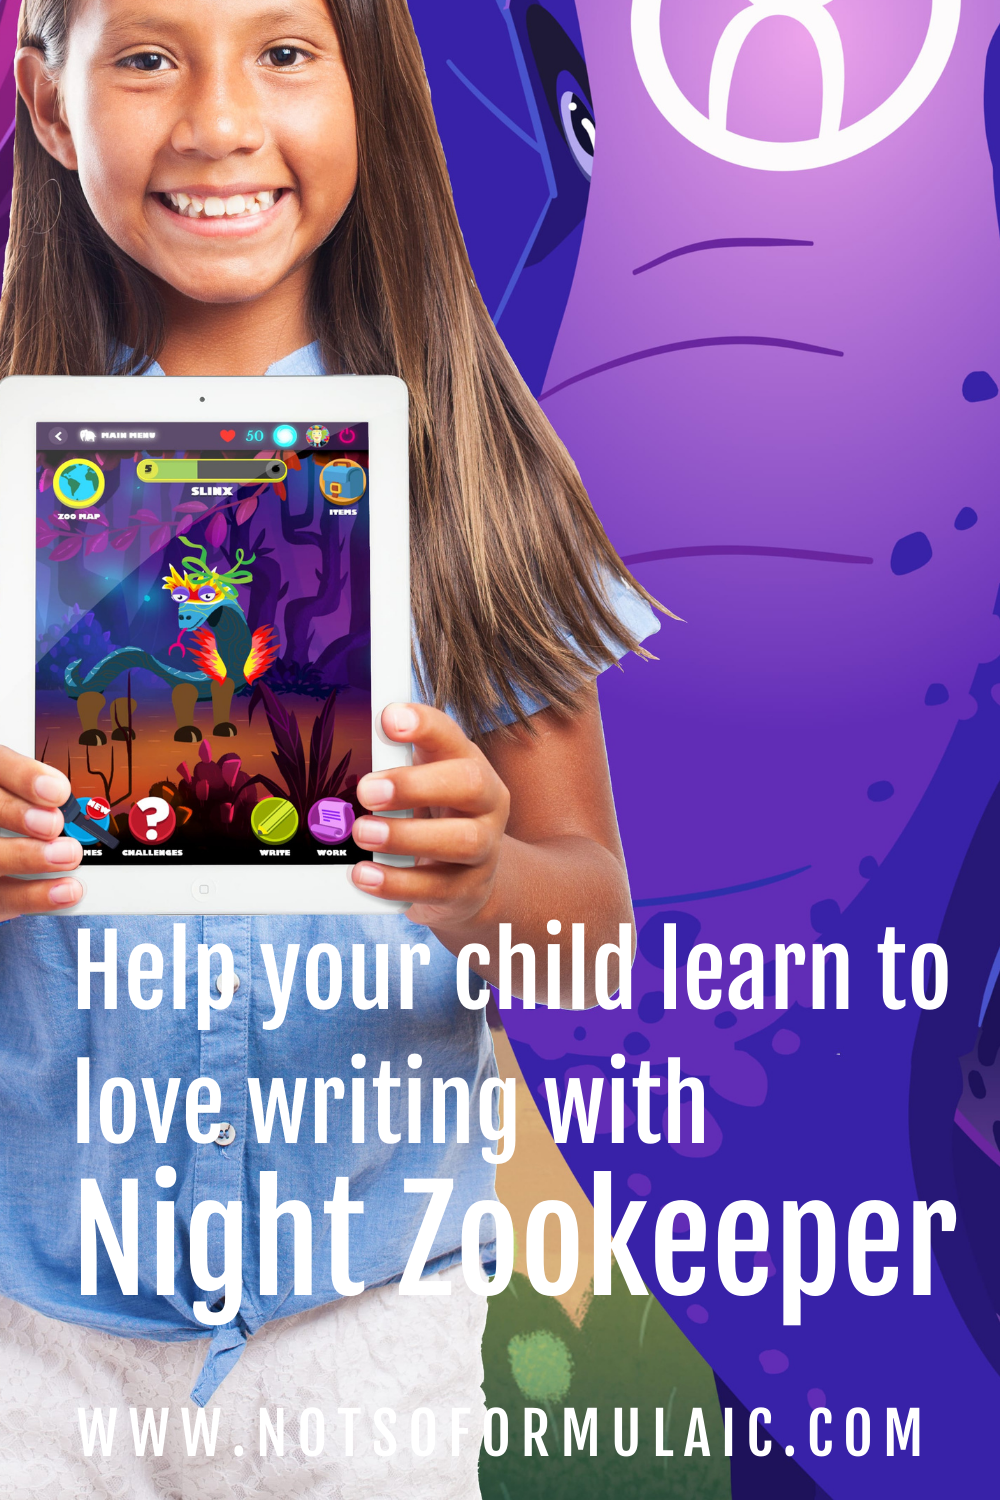 Night Zookeeper Pin - Night Zookeeper: Writing Enrichment For Differently-wired Kids - Gifted/2e Education